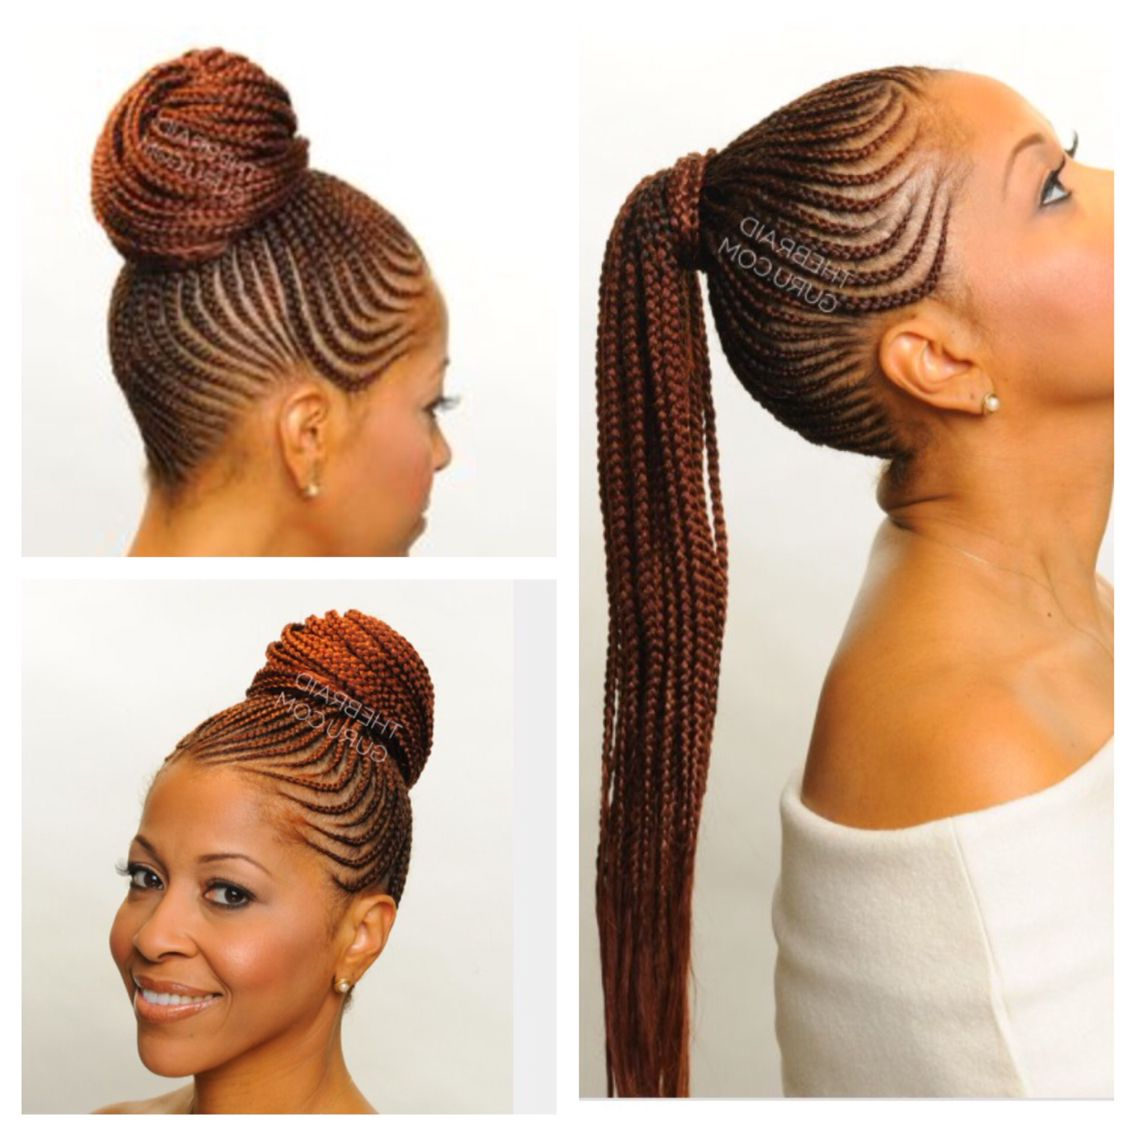 Braided Hairstyles Pertaining To Most Recent Cornrow Braided Bun Hairstyles (View 7 of 20)